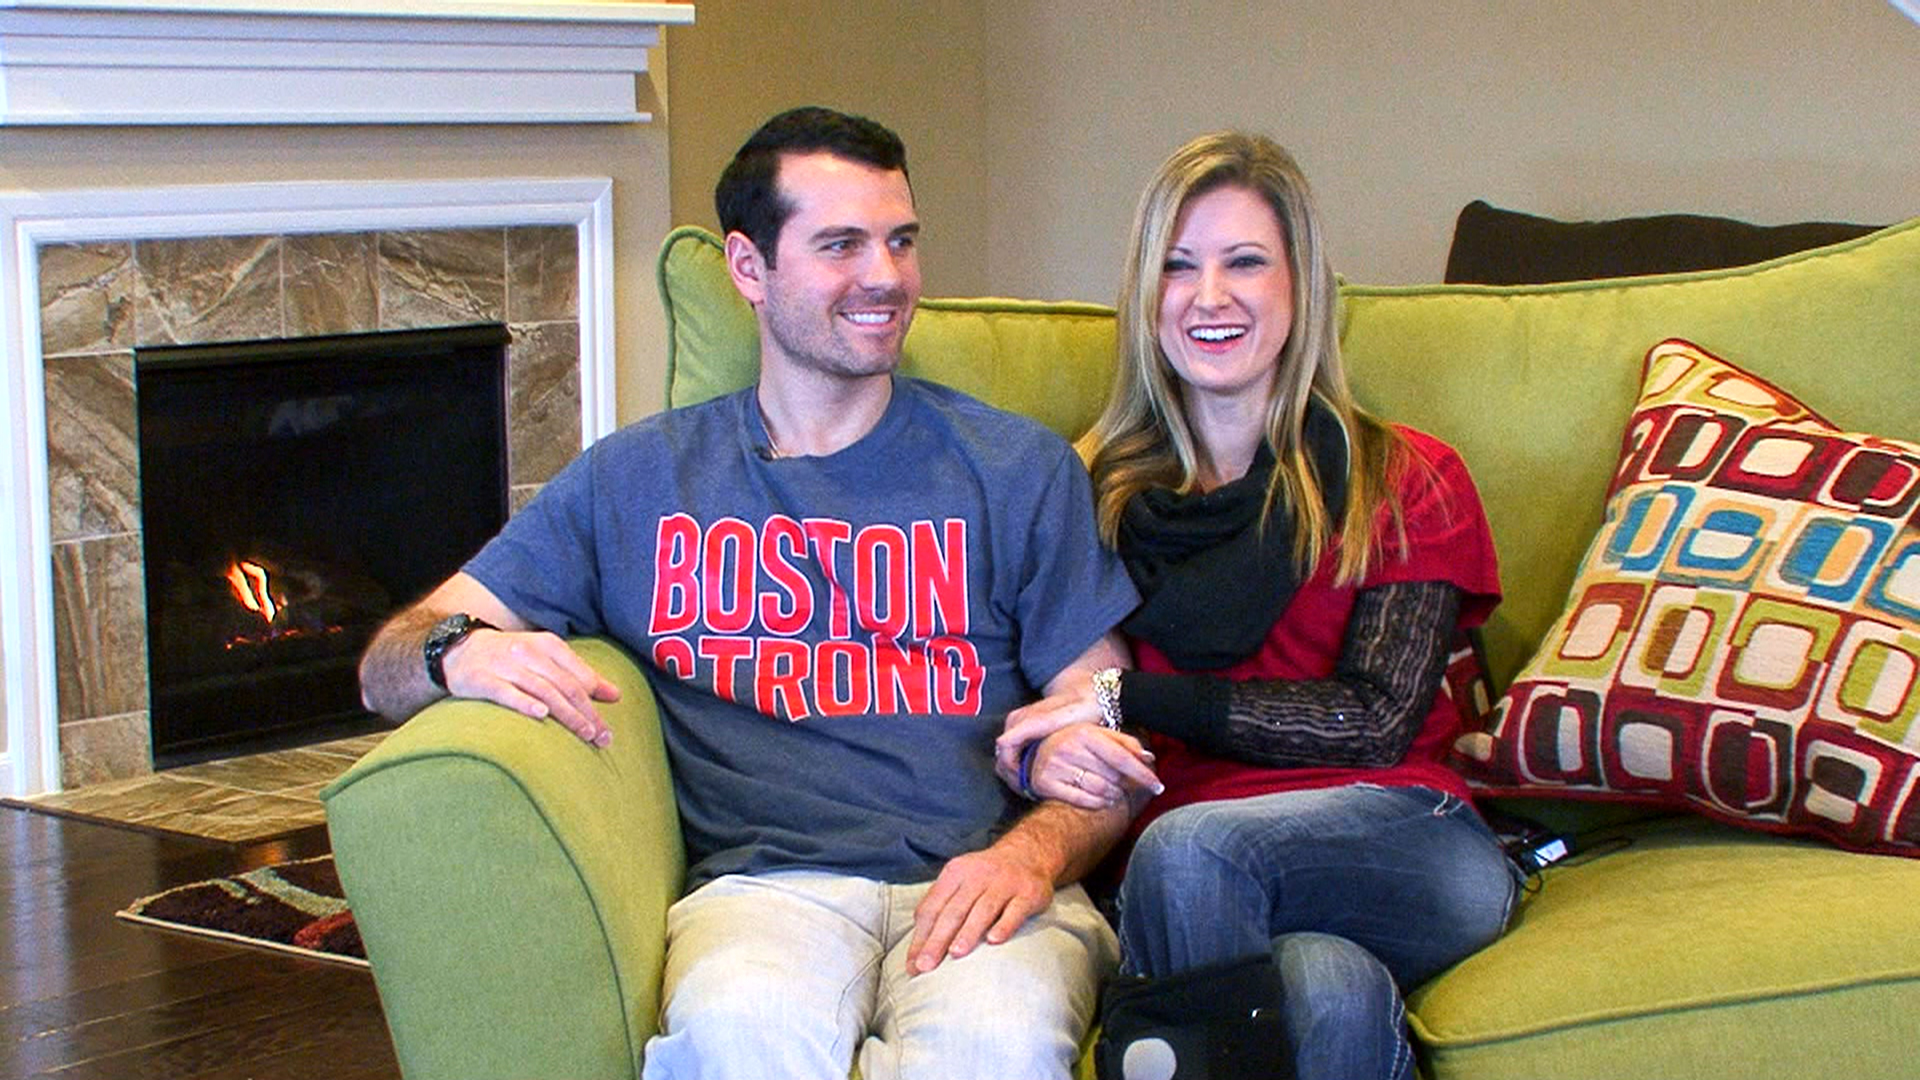 Boston Marathon Survivor Rebekah DiMartino Has Leg Amputated